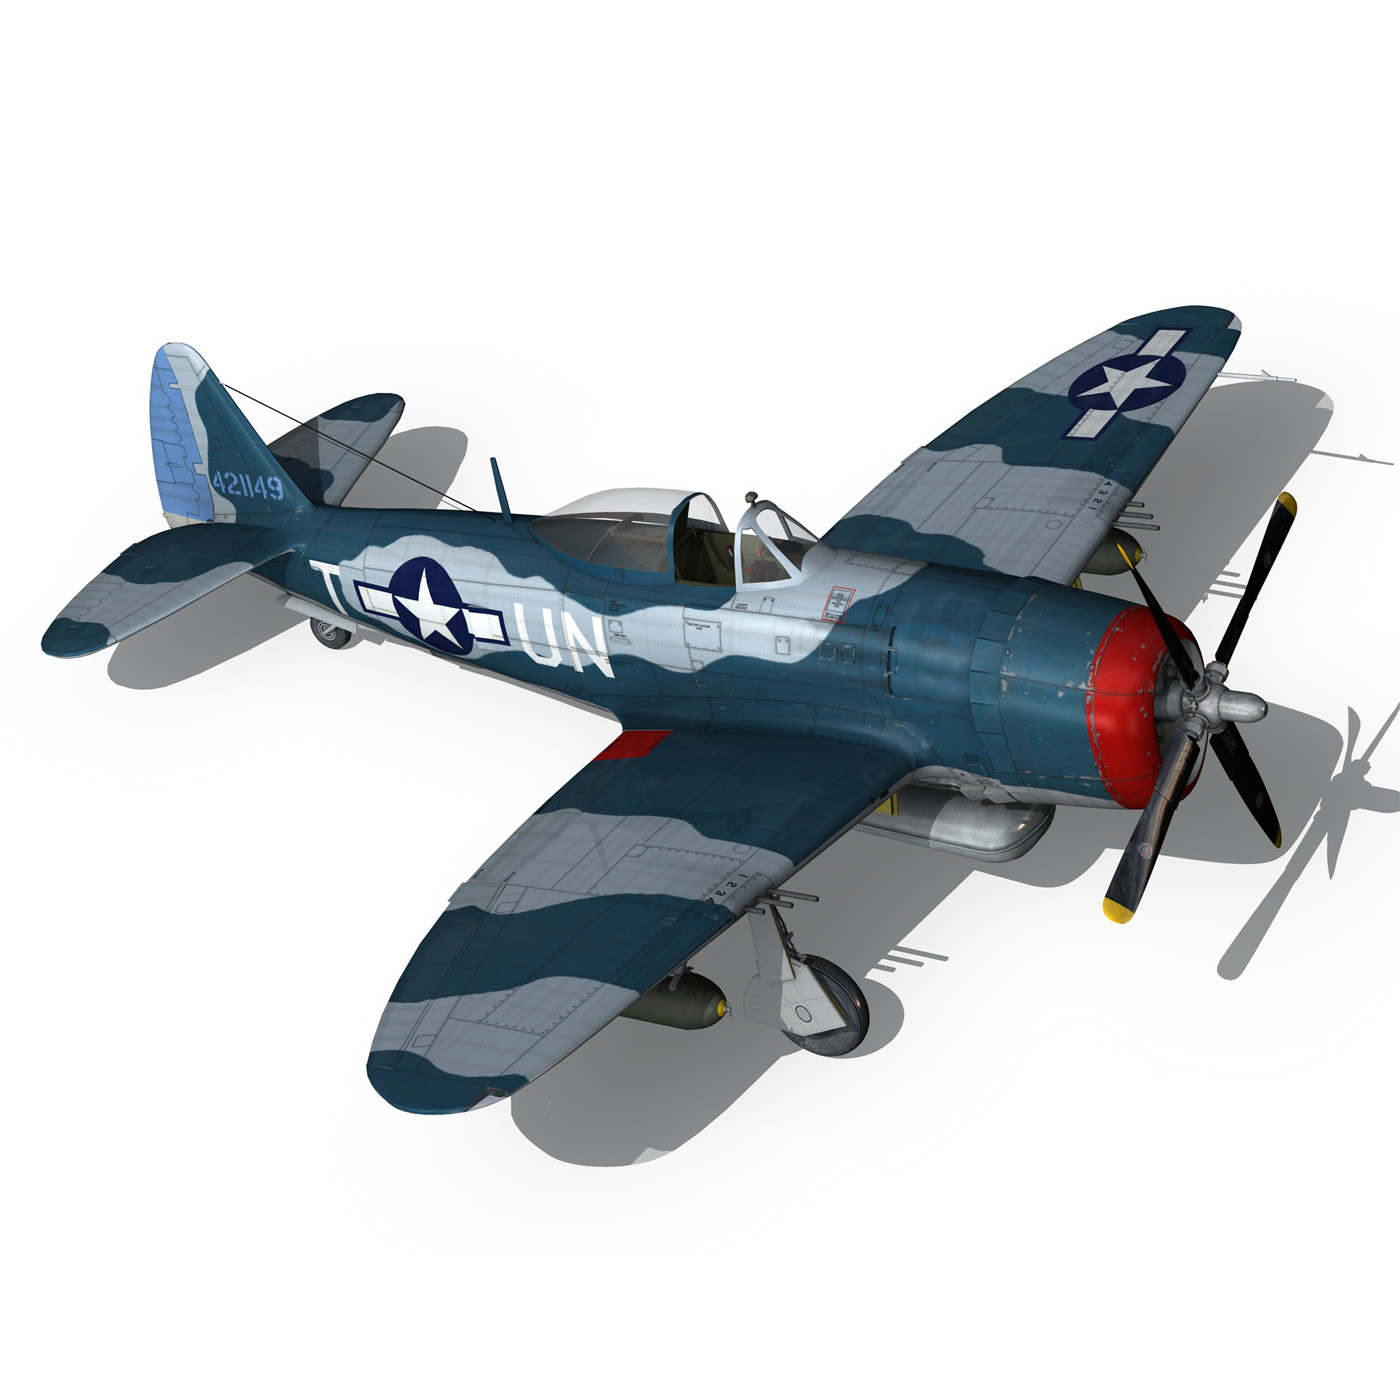 republic p-47 thunderbolt – ole miss lib 3d model fbx c4d lwo obj 274287